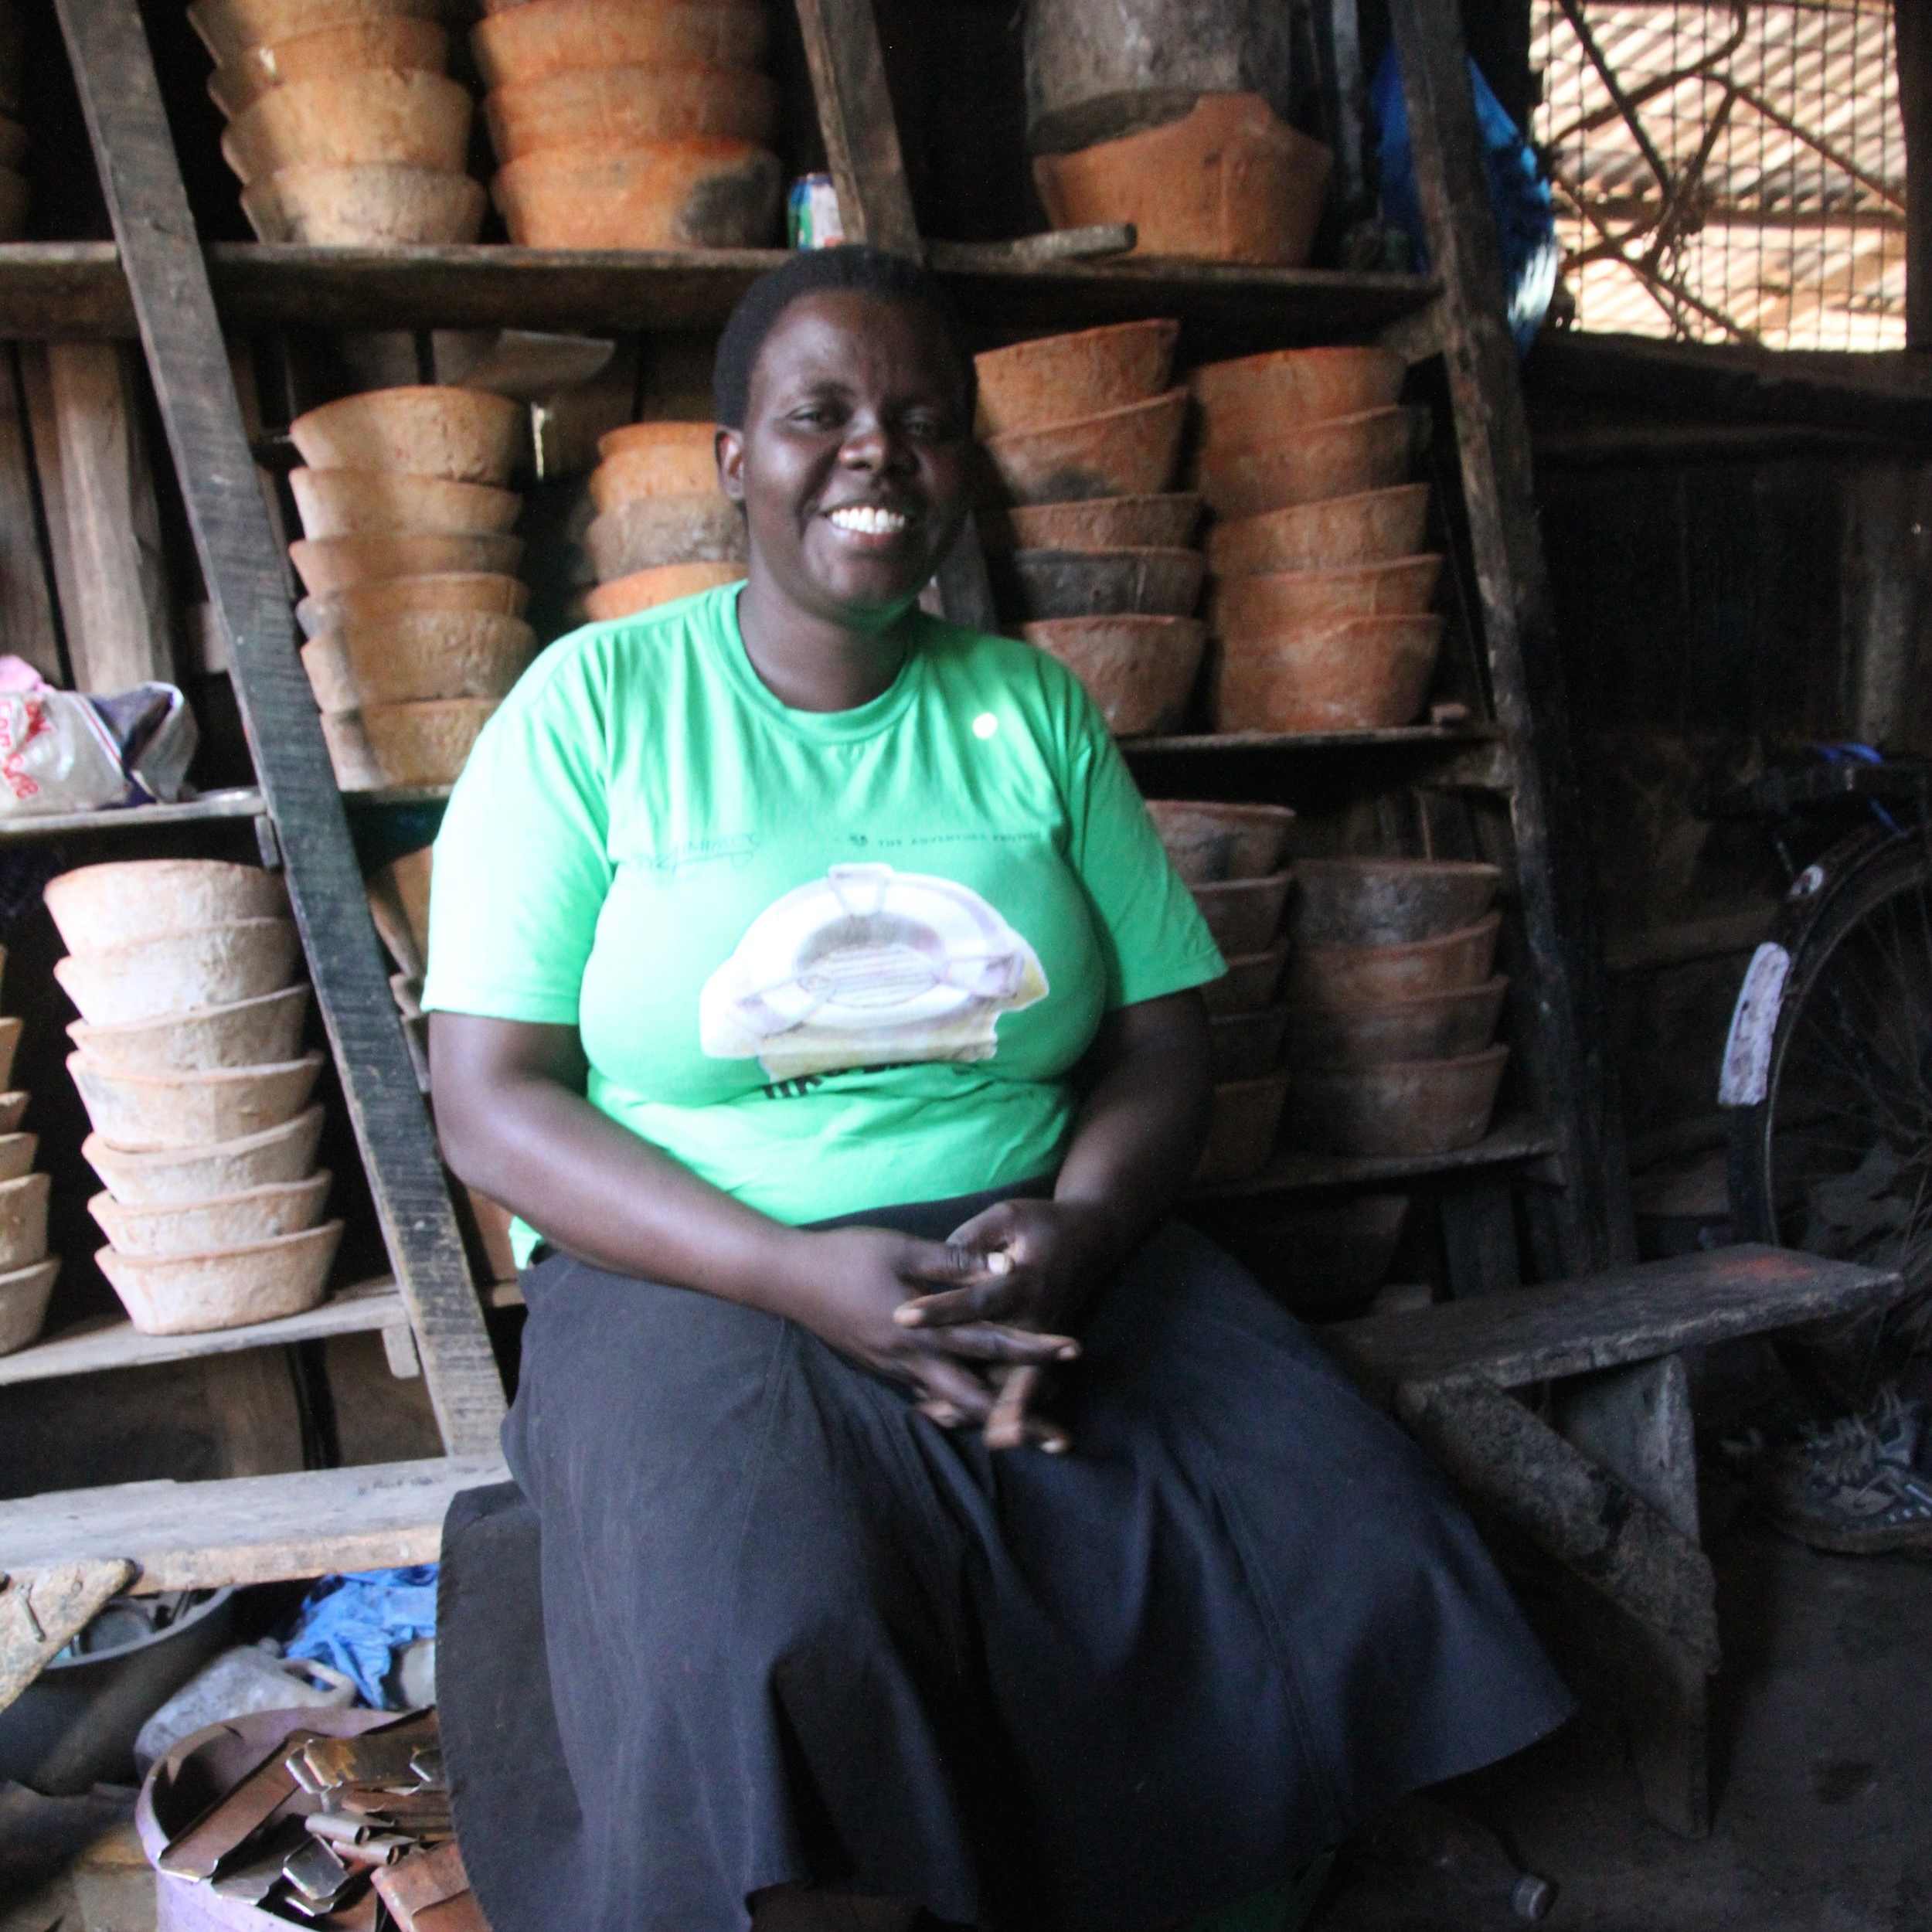 Hi, I'm Jeniffer - My cookstove business is the only reliable source of income for my family. With your support, I'll open new outlets to sell my products and reach new customers!